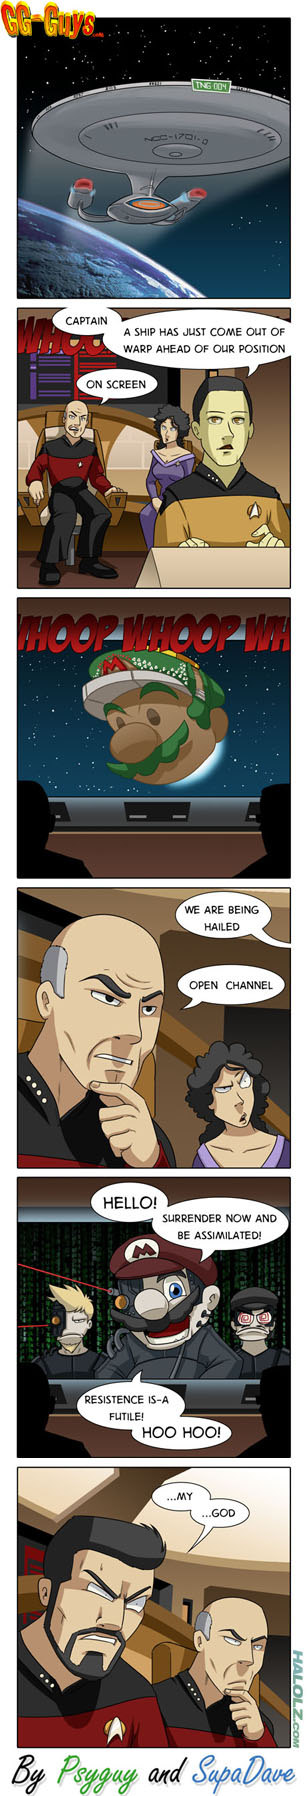 RESISTANCE IS-A FUTILE! Super Mario Galaxy 2 Comic